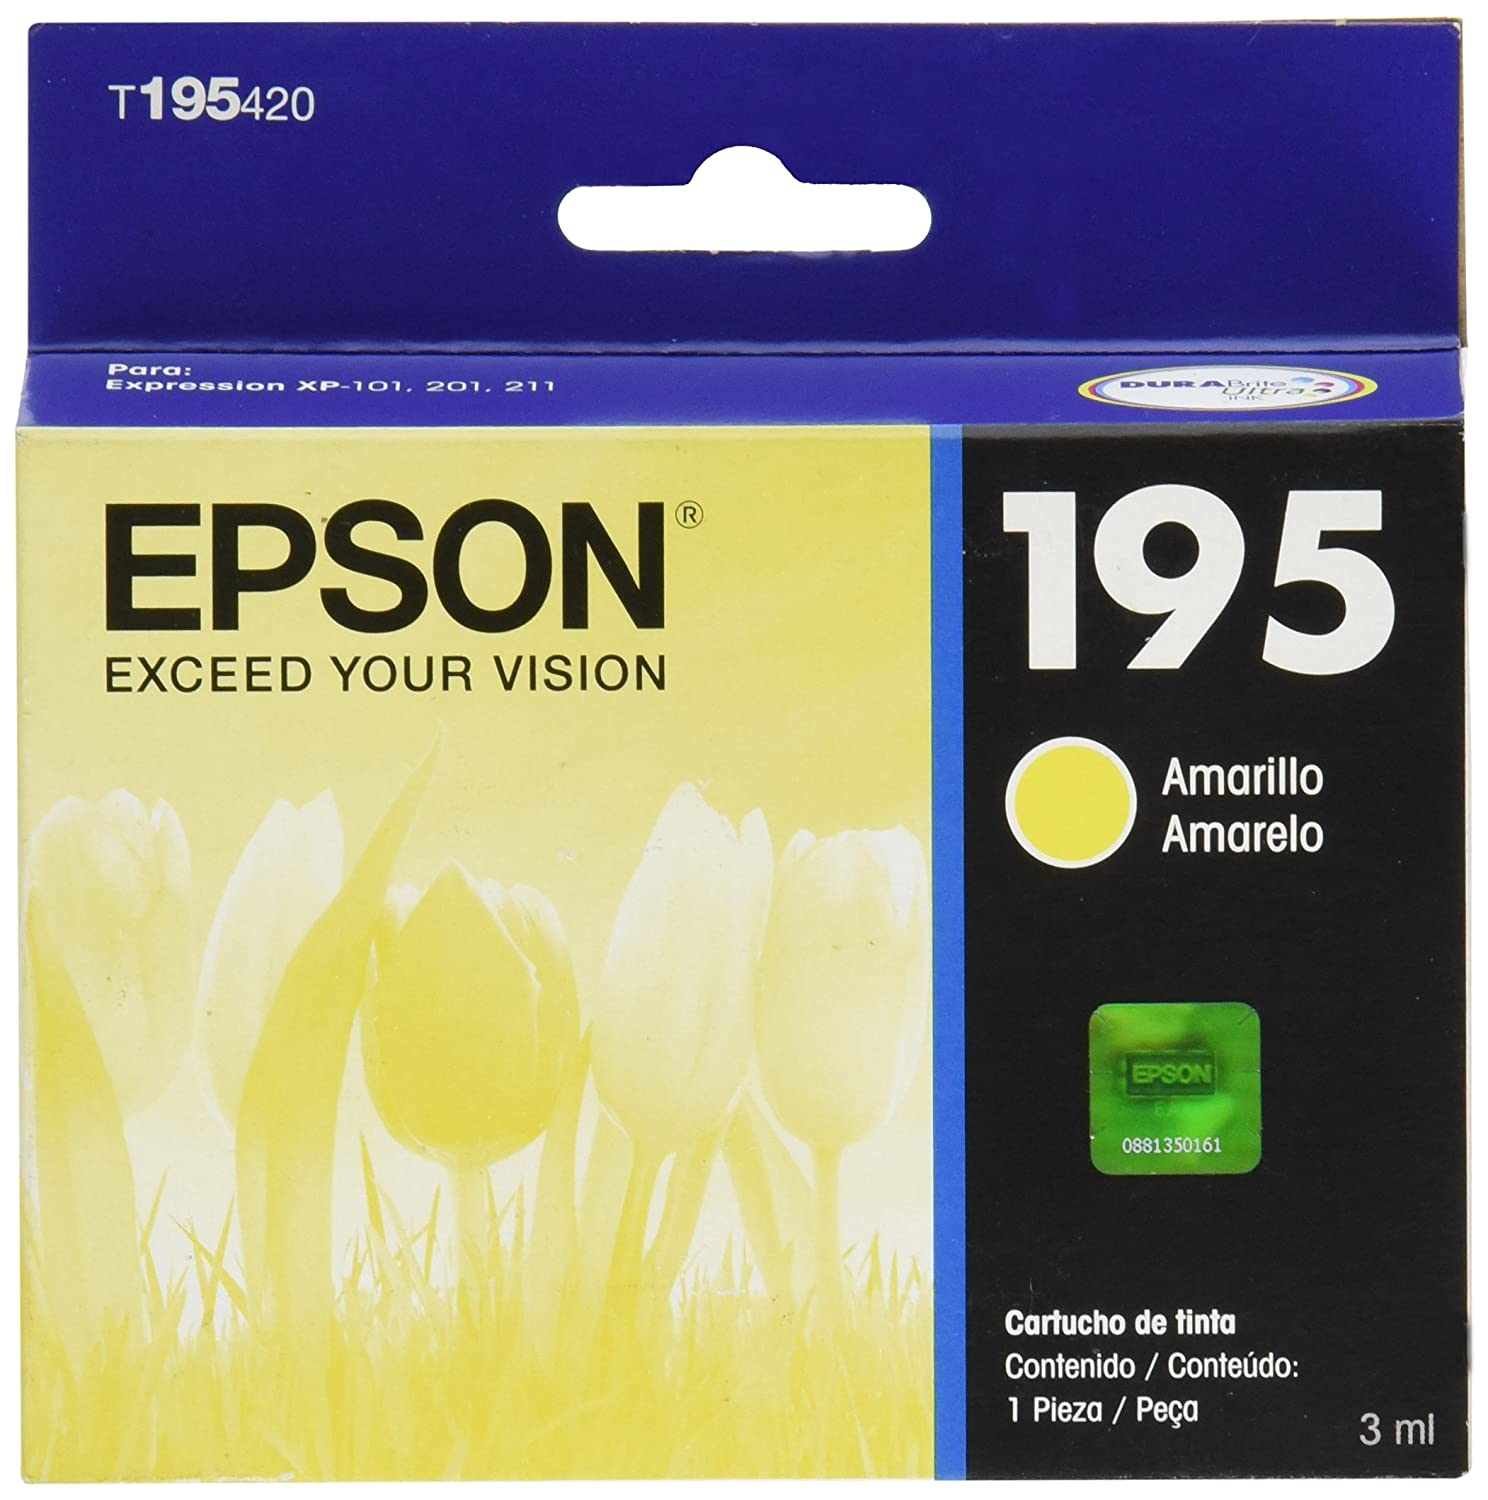 Amazon.com: Epson Cartucho t195420 Yellow Ink: Office Products